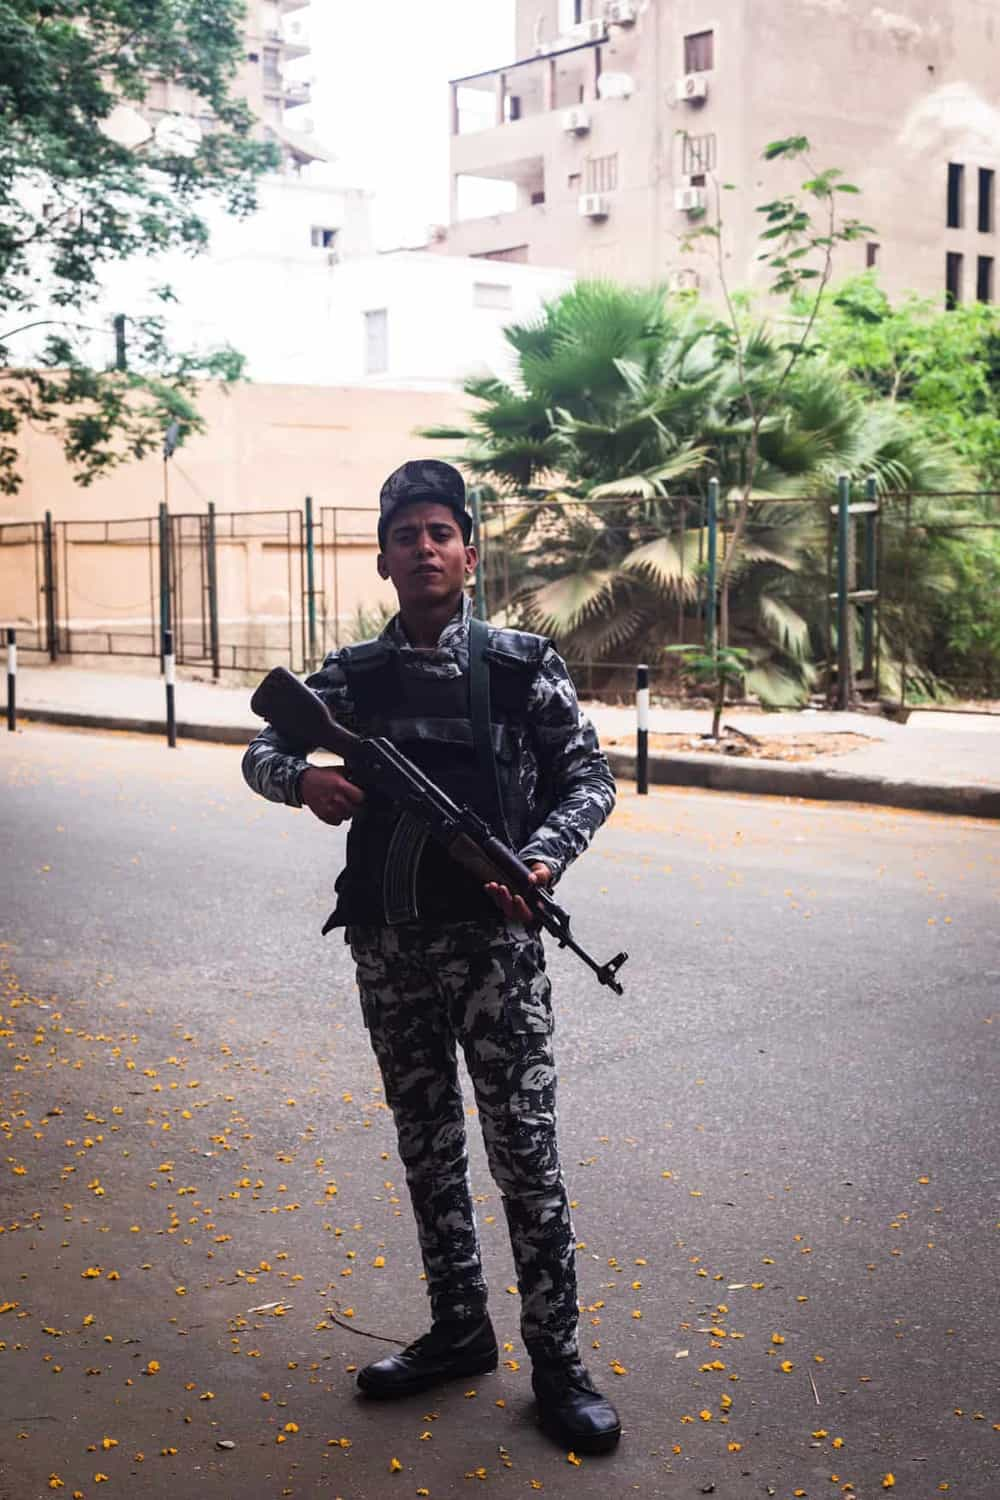 Portrait shot of a security guard proudly posing with his gun in the Zamalek district of Old Cairo.